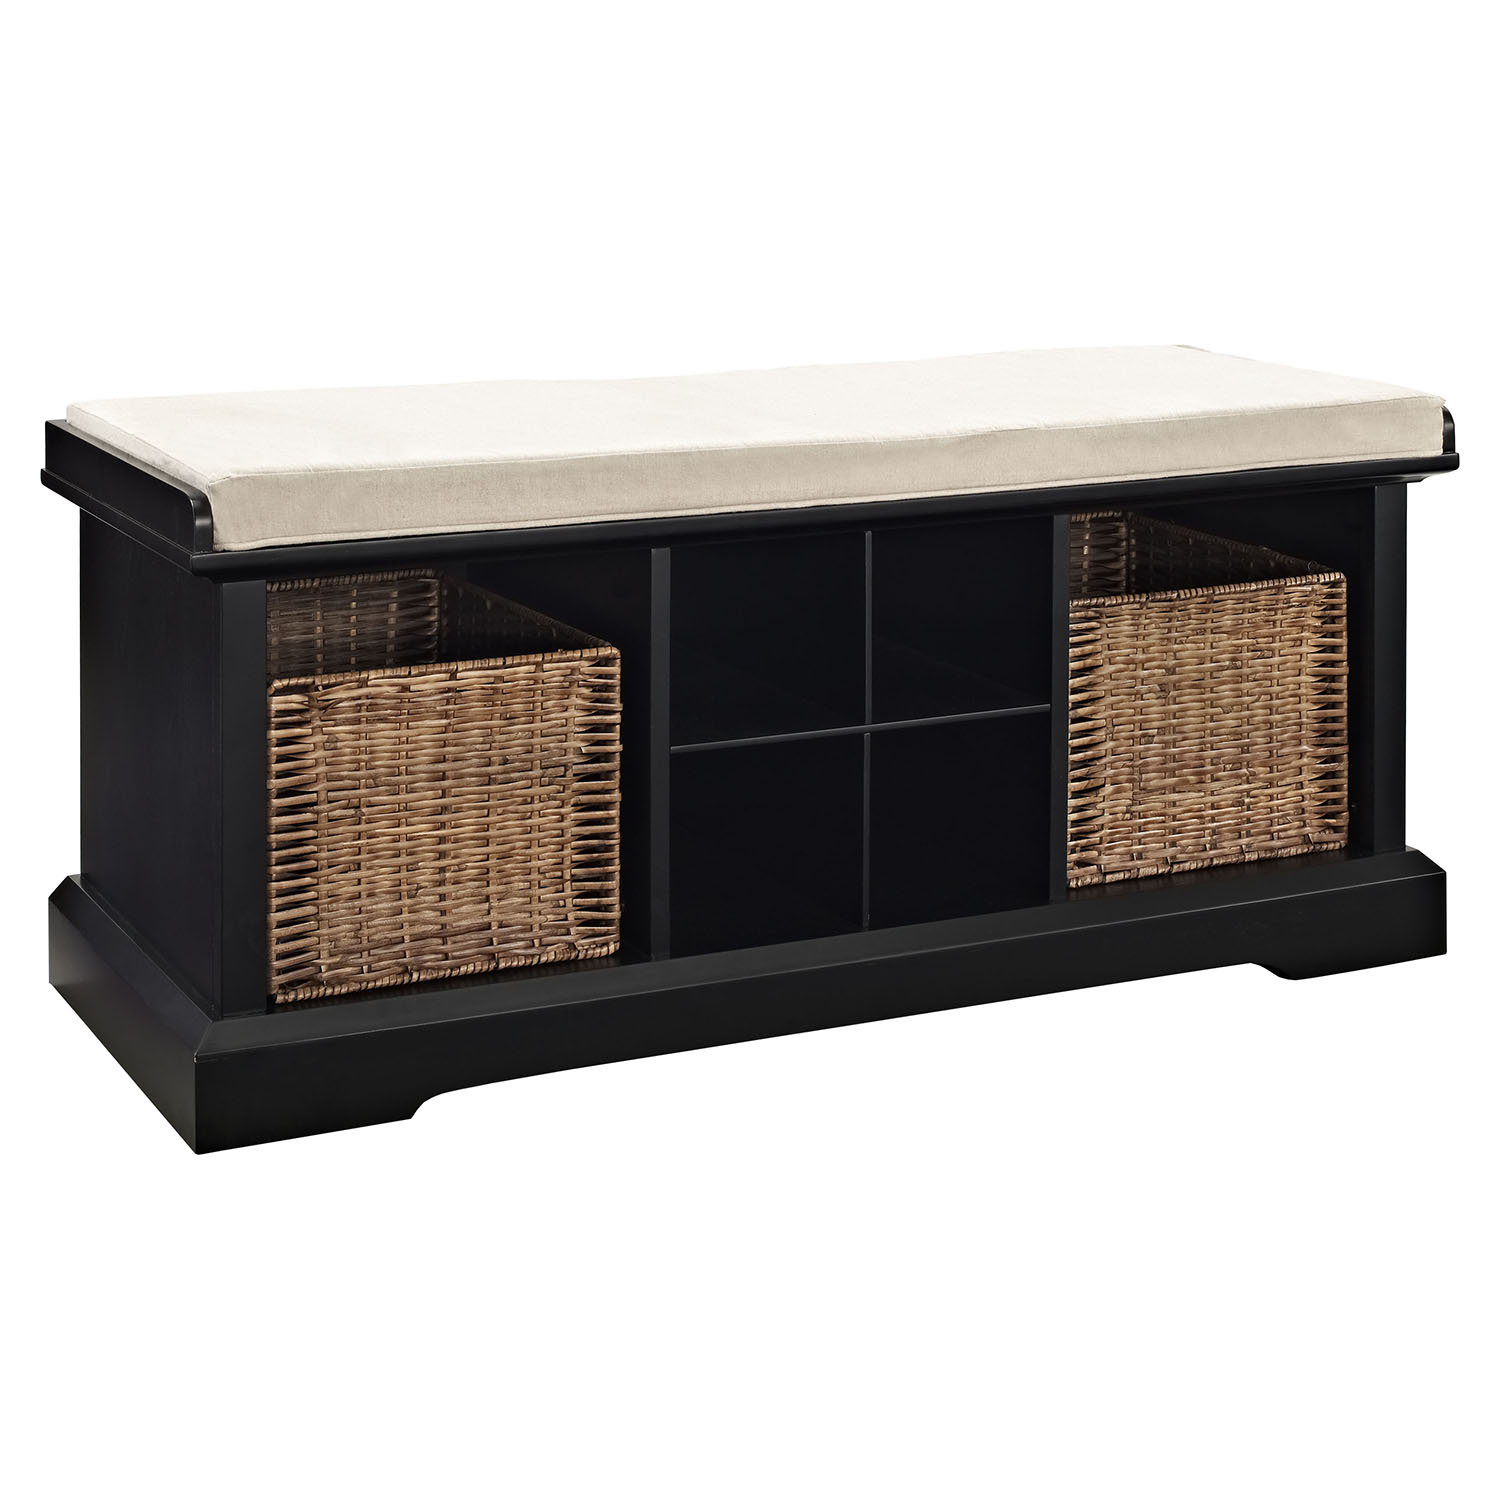 Brennan Entryway Storage Bench - Black - CROS-CF6003-BK